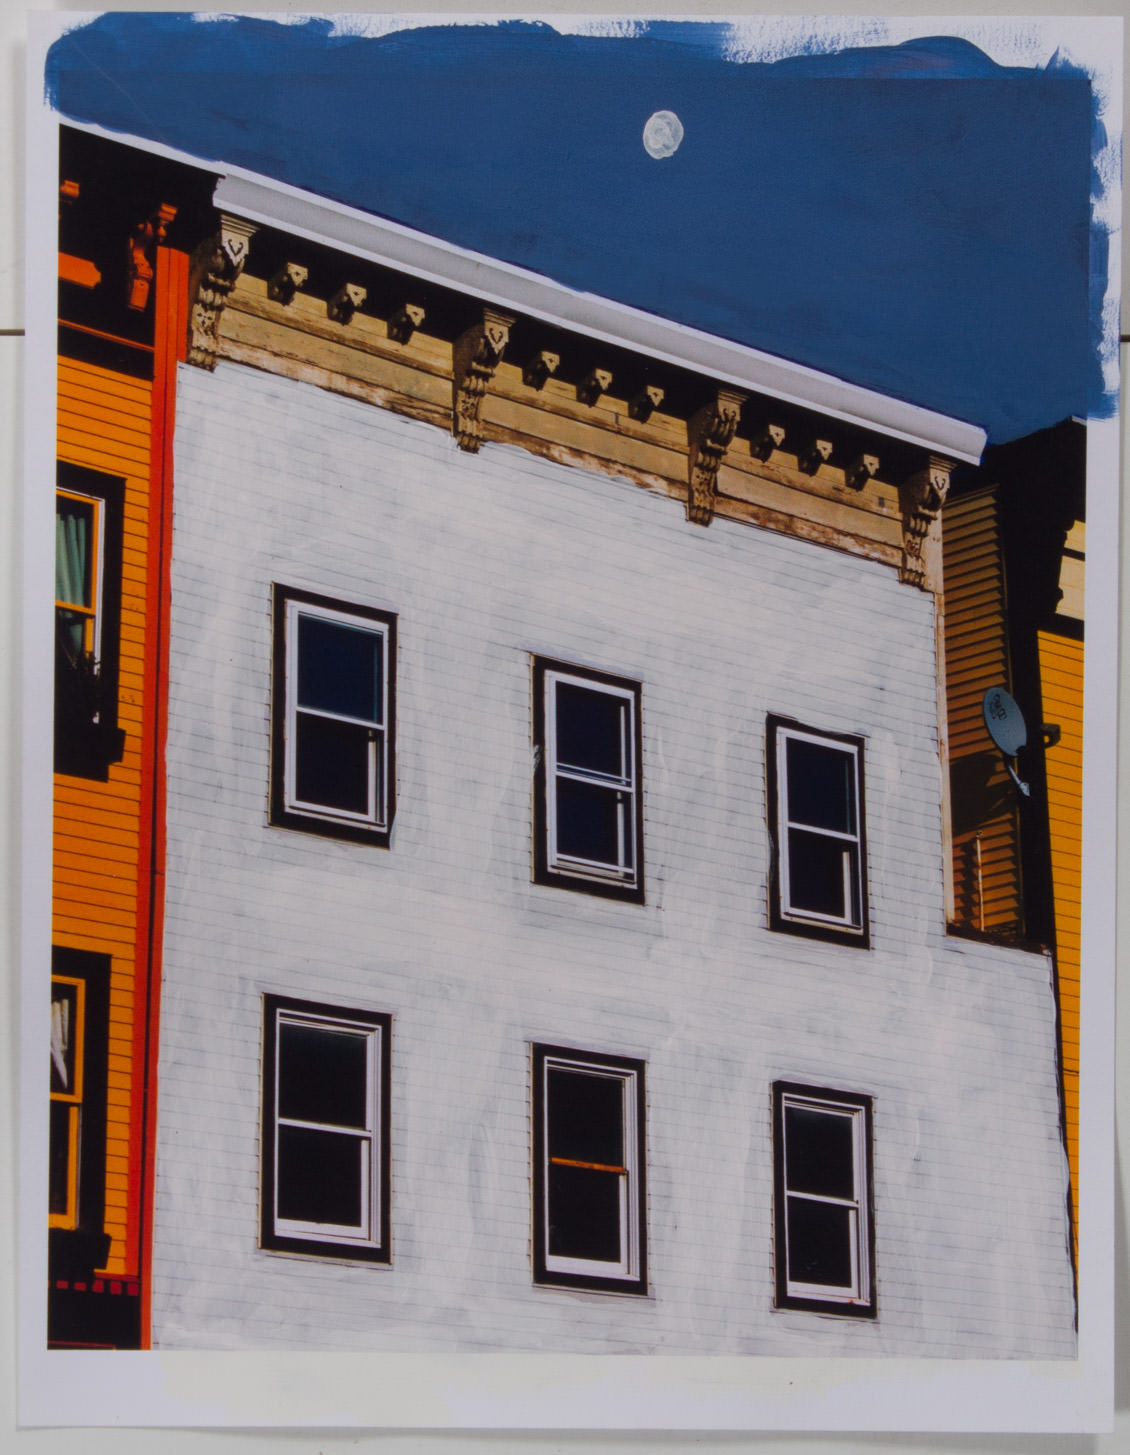 White Building and White Moon (8x10 - matte print - acrylic)